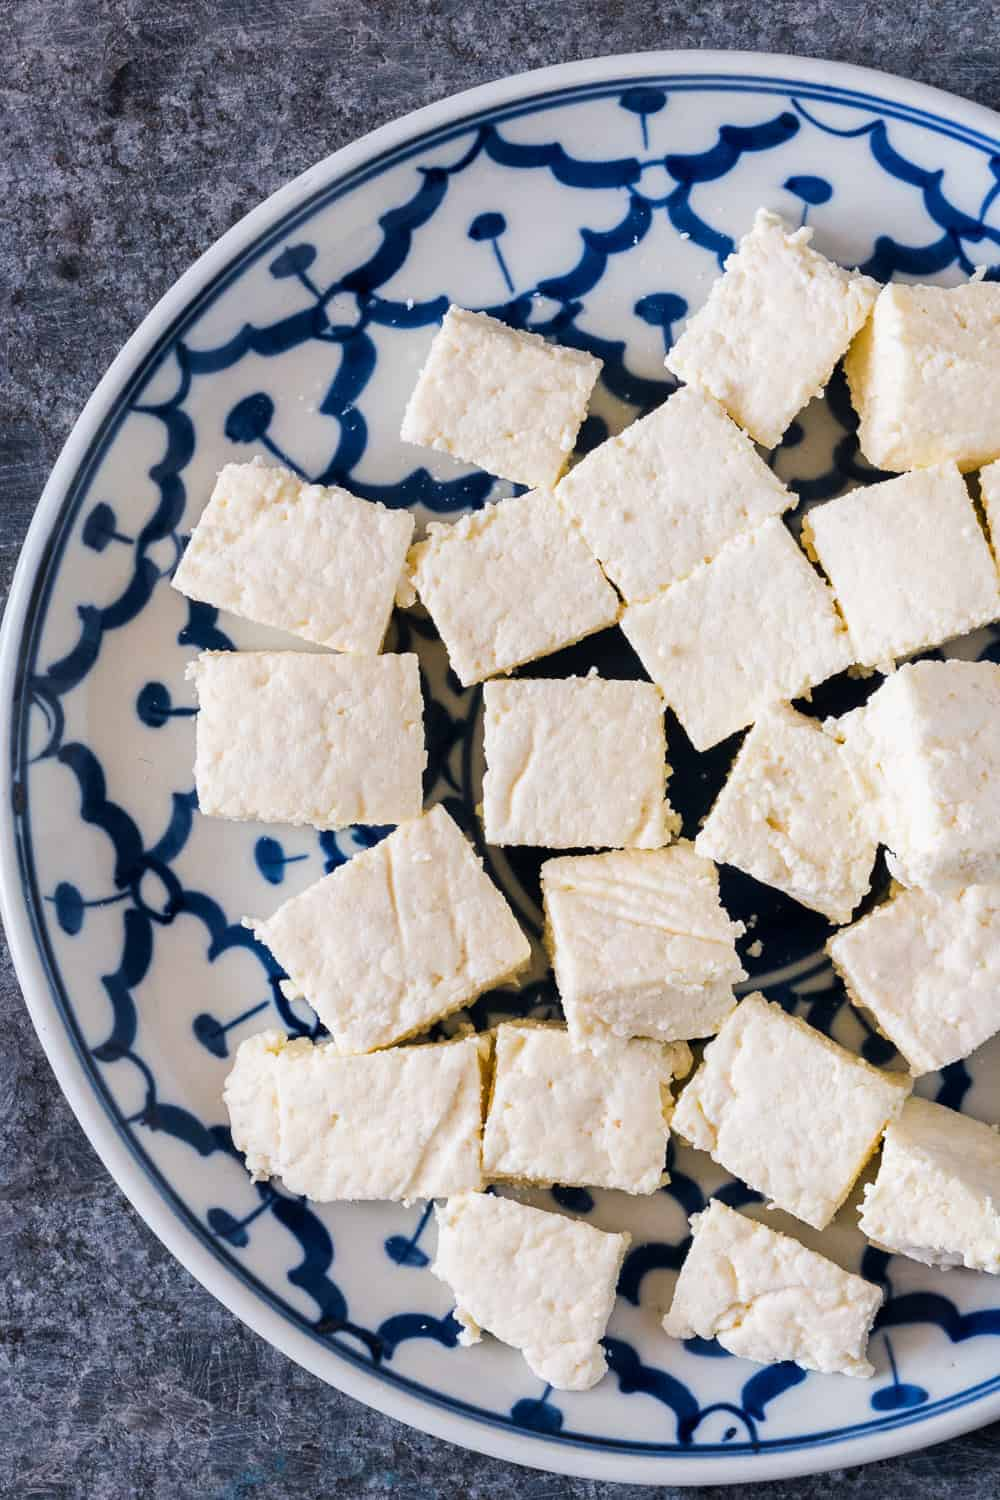 Here's step by step instructions to make homemade Indian paneer (cottage cheese) in just 15 minutes. The next time you want to make saag paneer, palak paneer, makhani, tikka or matar paneer, don't buy store bought and just make this at home with 2 ingredients.